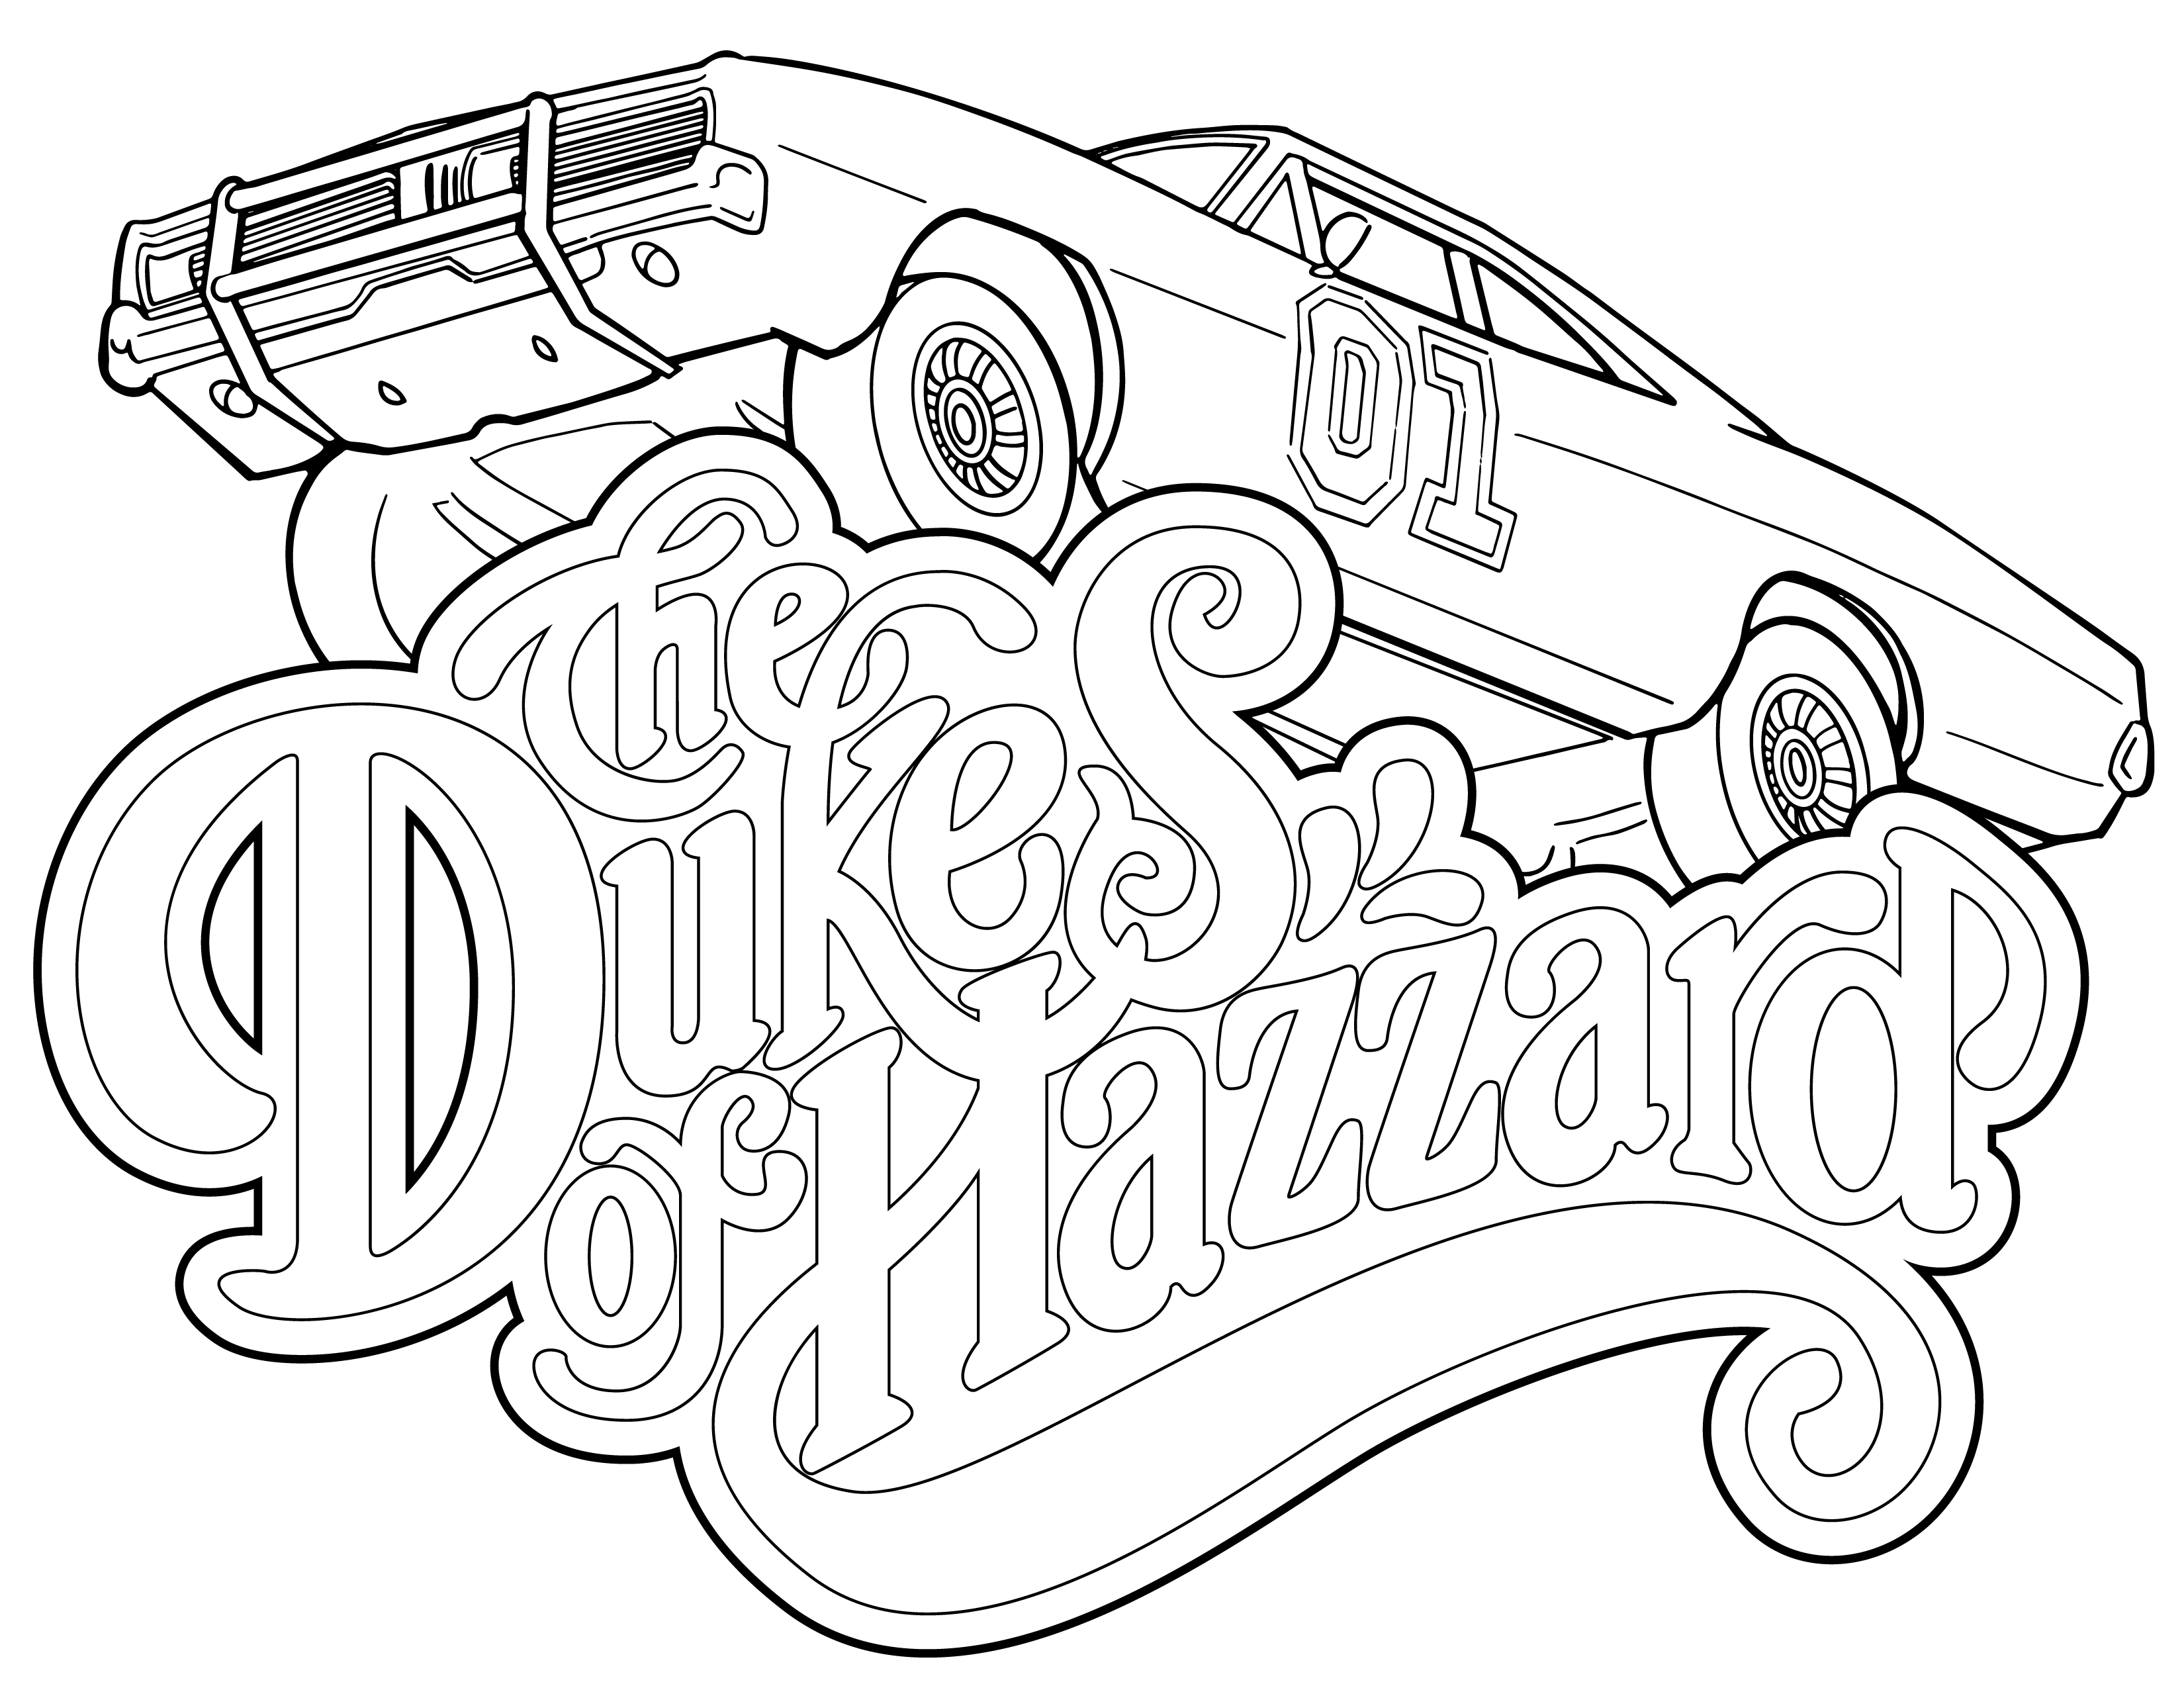 Downloadable Coloring Pages Coloring Pages Coloring Books Coloring Book Pages